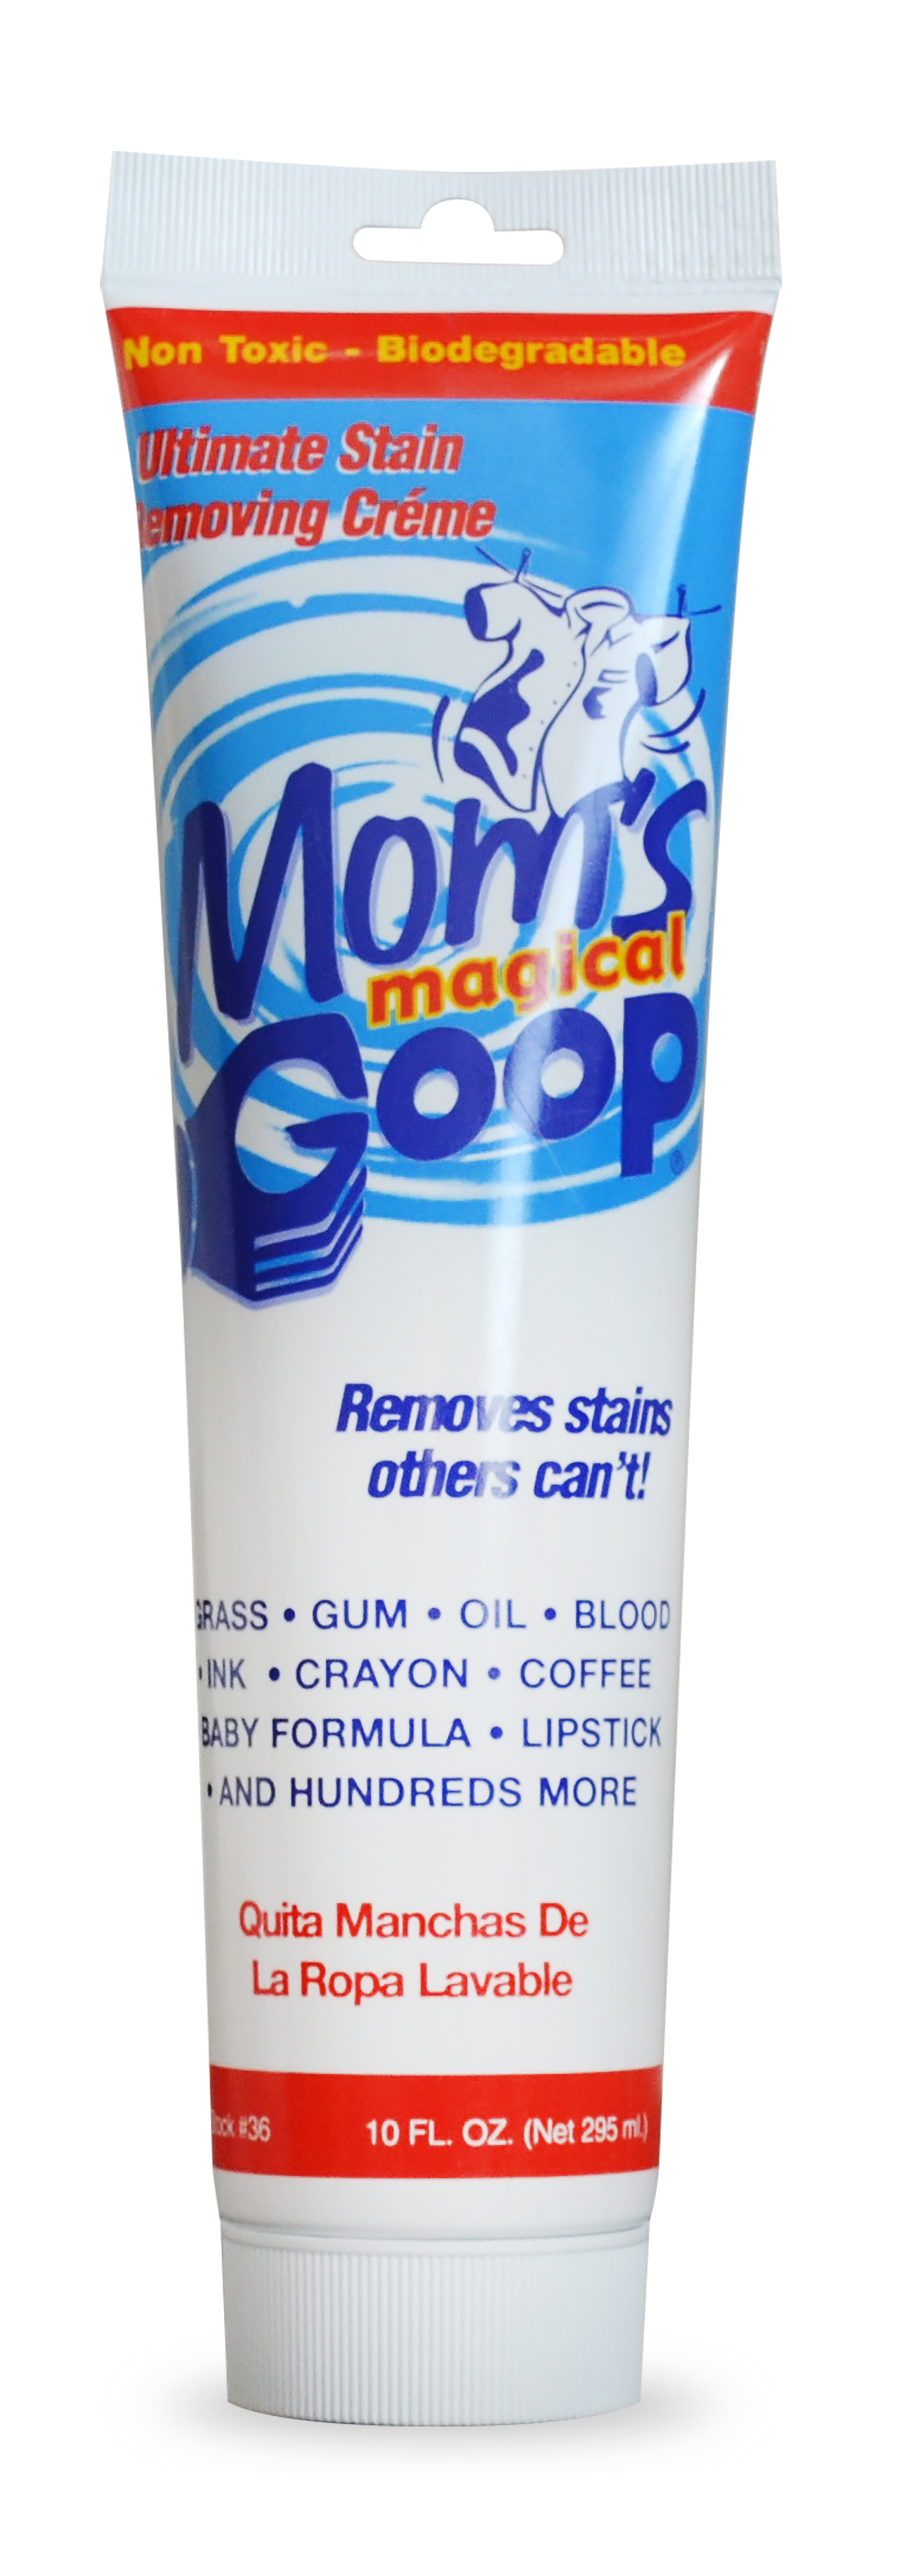 Moms-Goop-Moms-36-Tube10oz.jpg